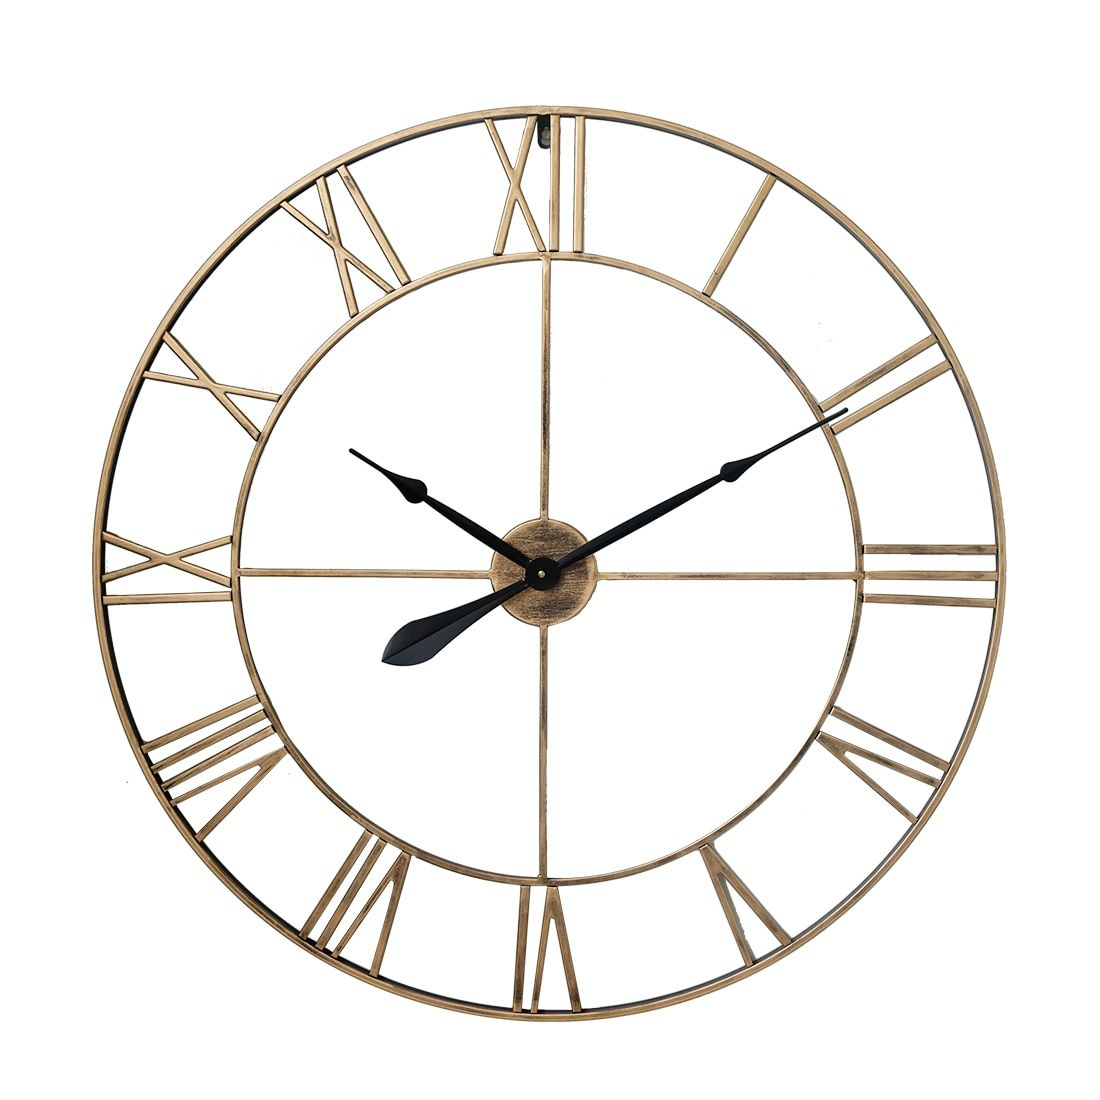 80cm 31 5 Inches Retro Wrought Iron Roman Numeral Wall Clock Silent Hanging Clock For Home Decor Wall Clock Silent Roman Numeral Wall Clock Hanging Clock